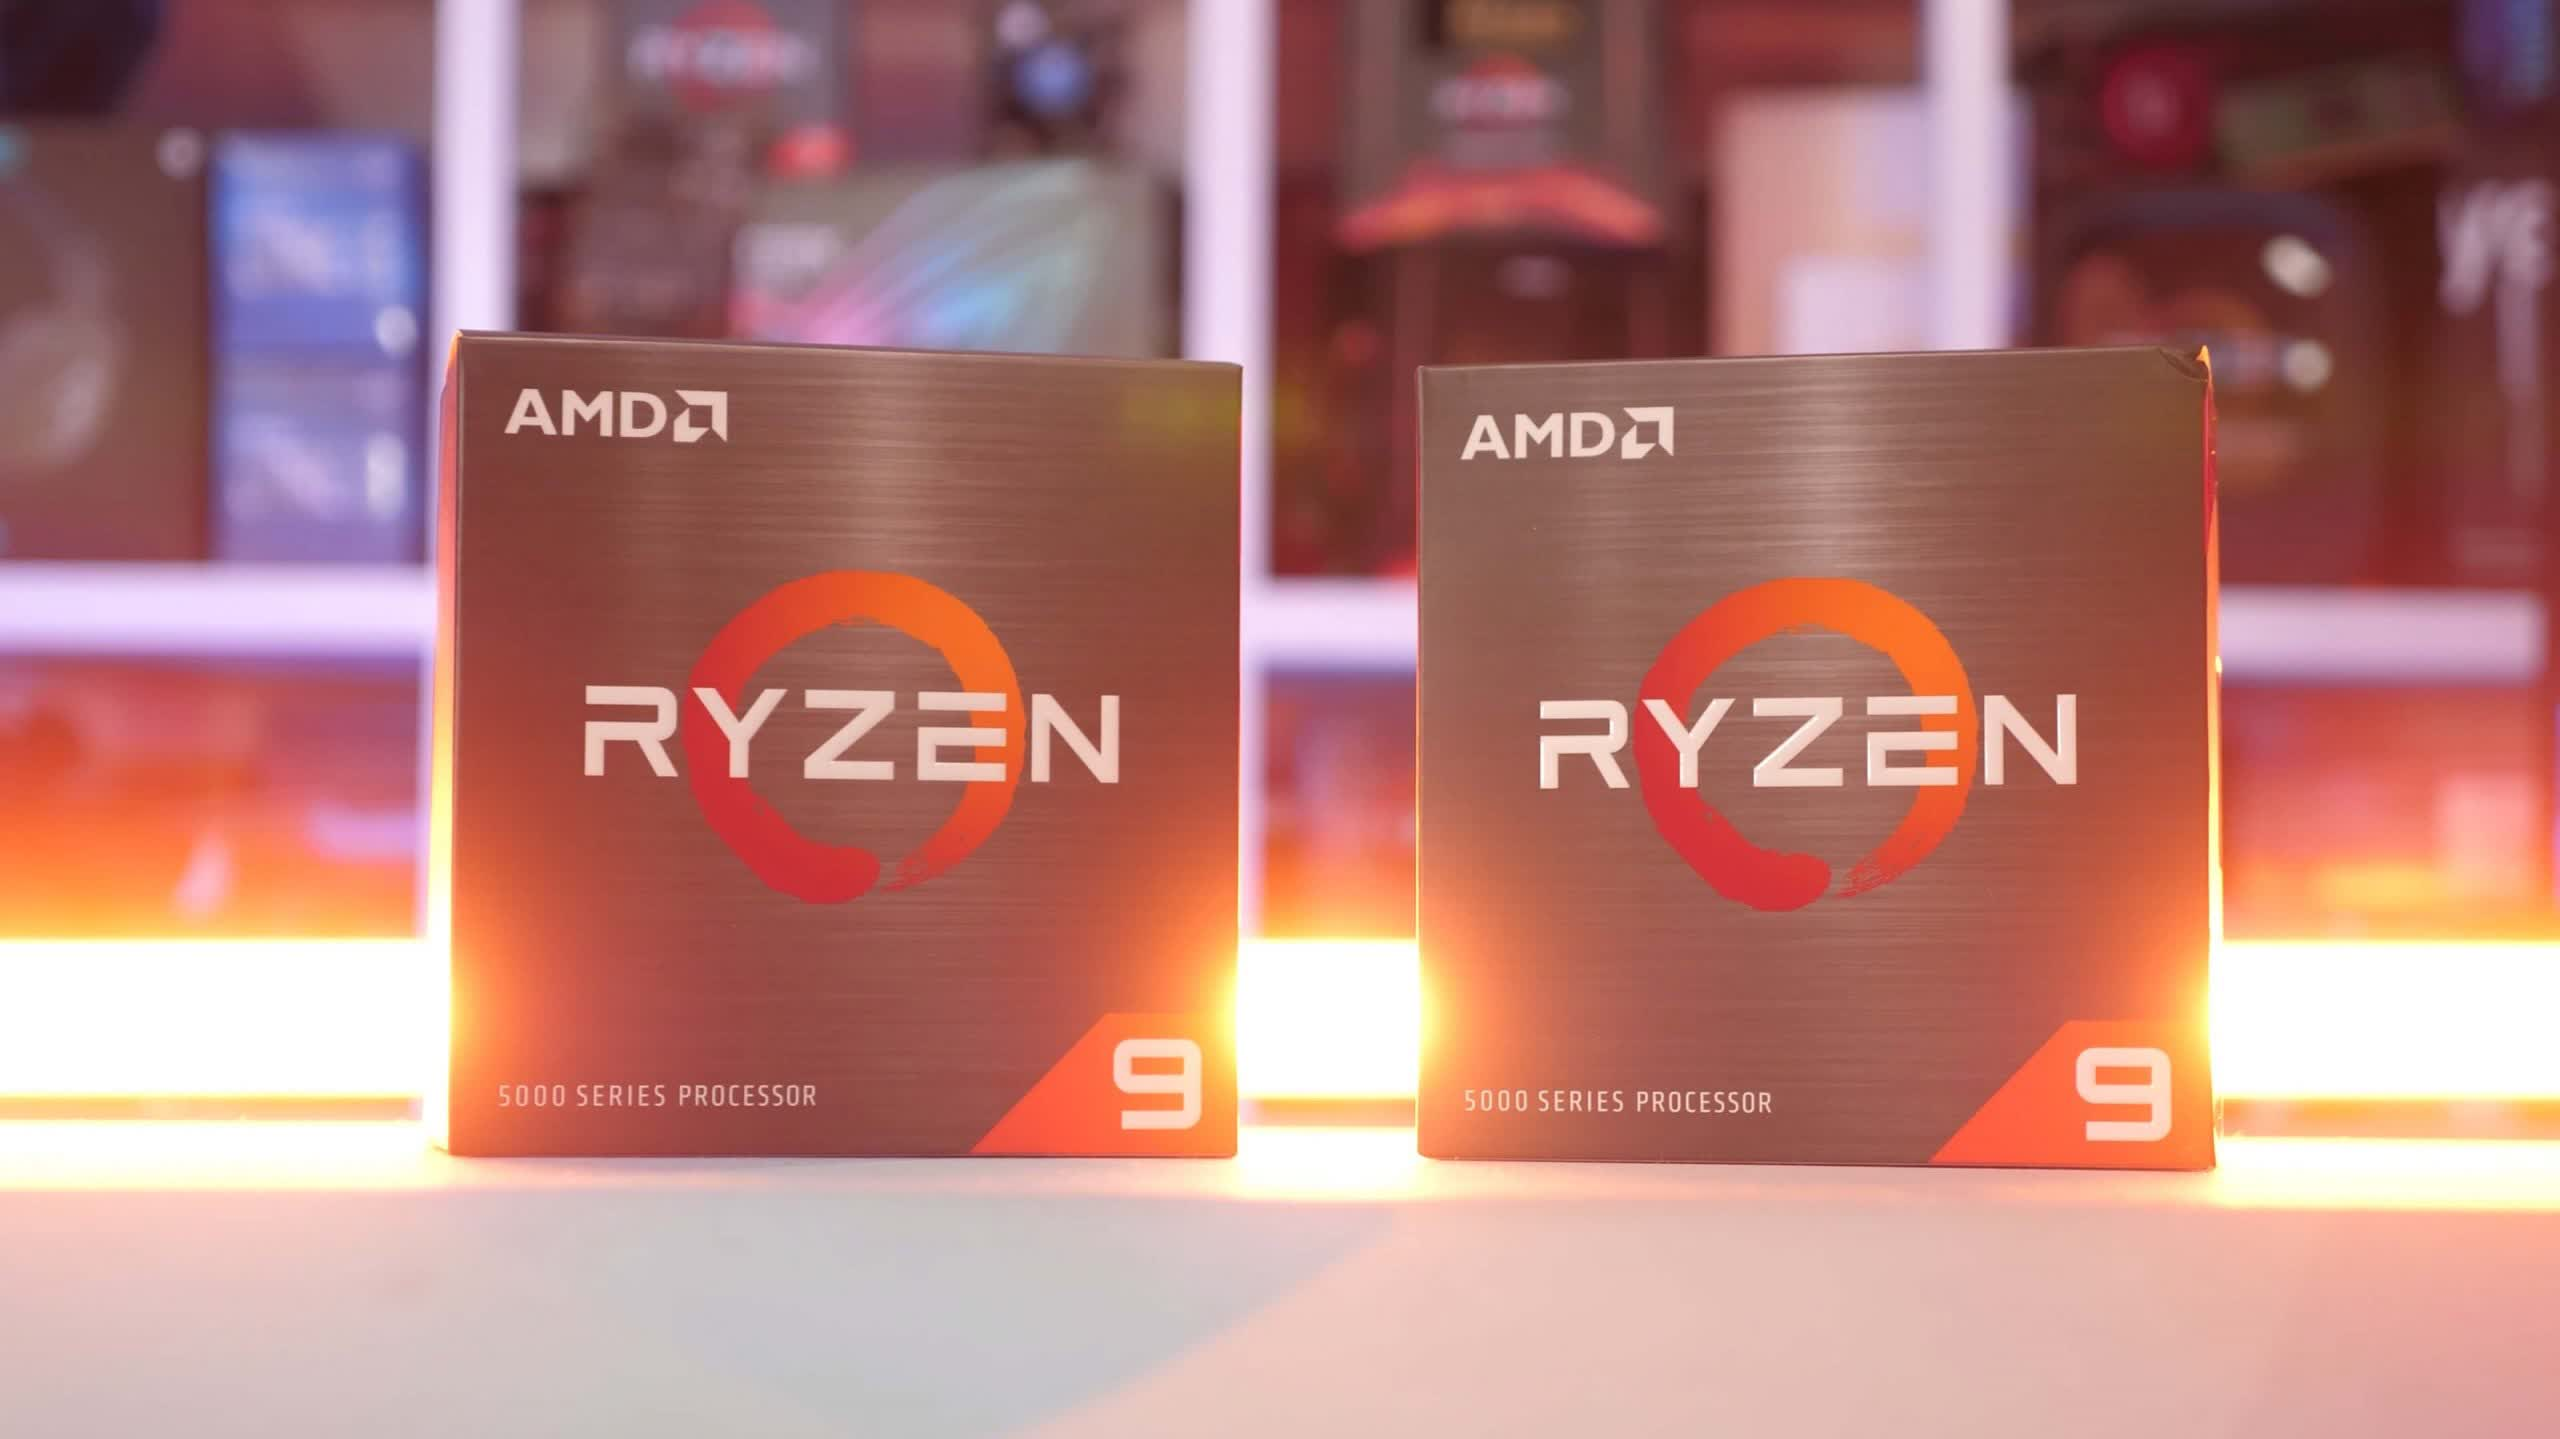 AMD Ryzen 5000 CPUs are back in stock at some European retailers